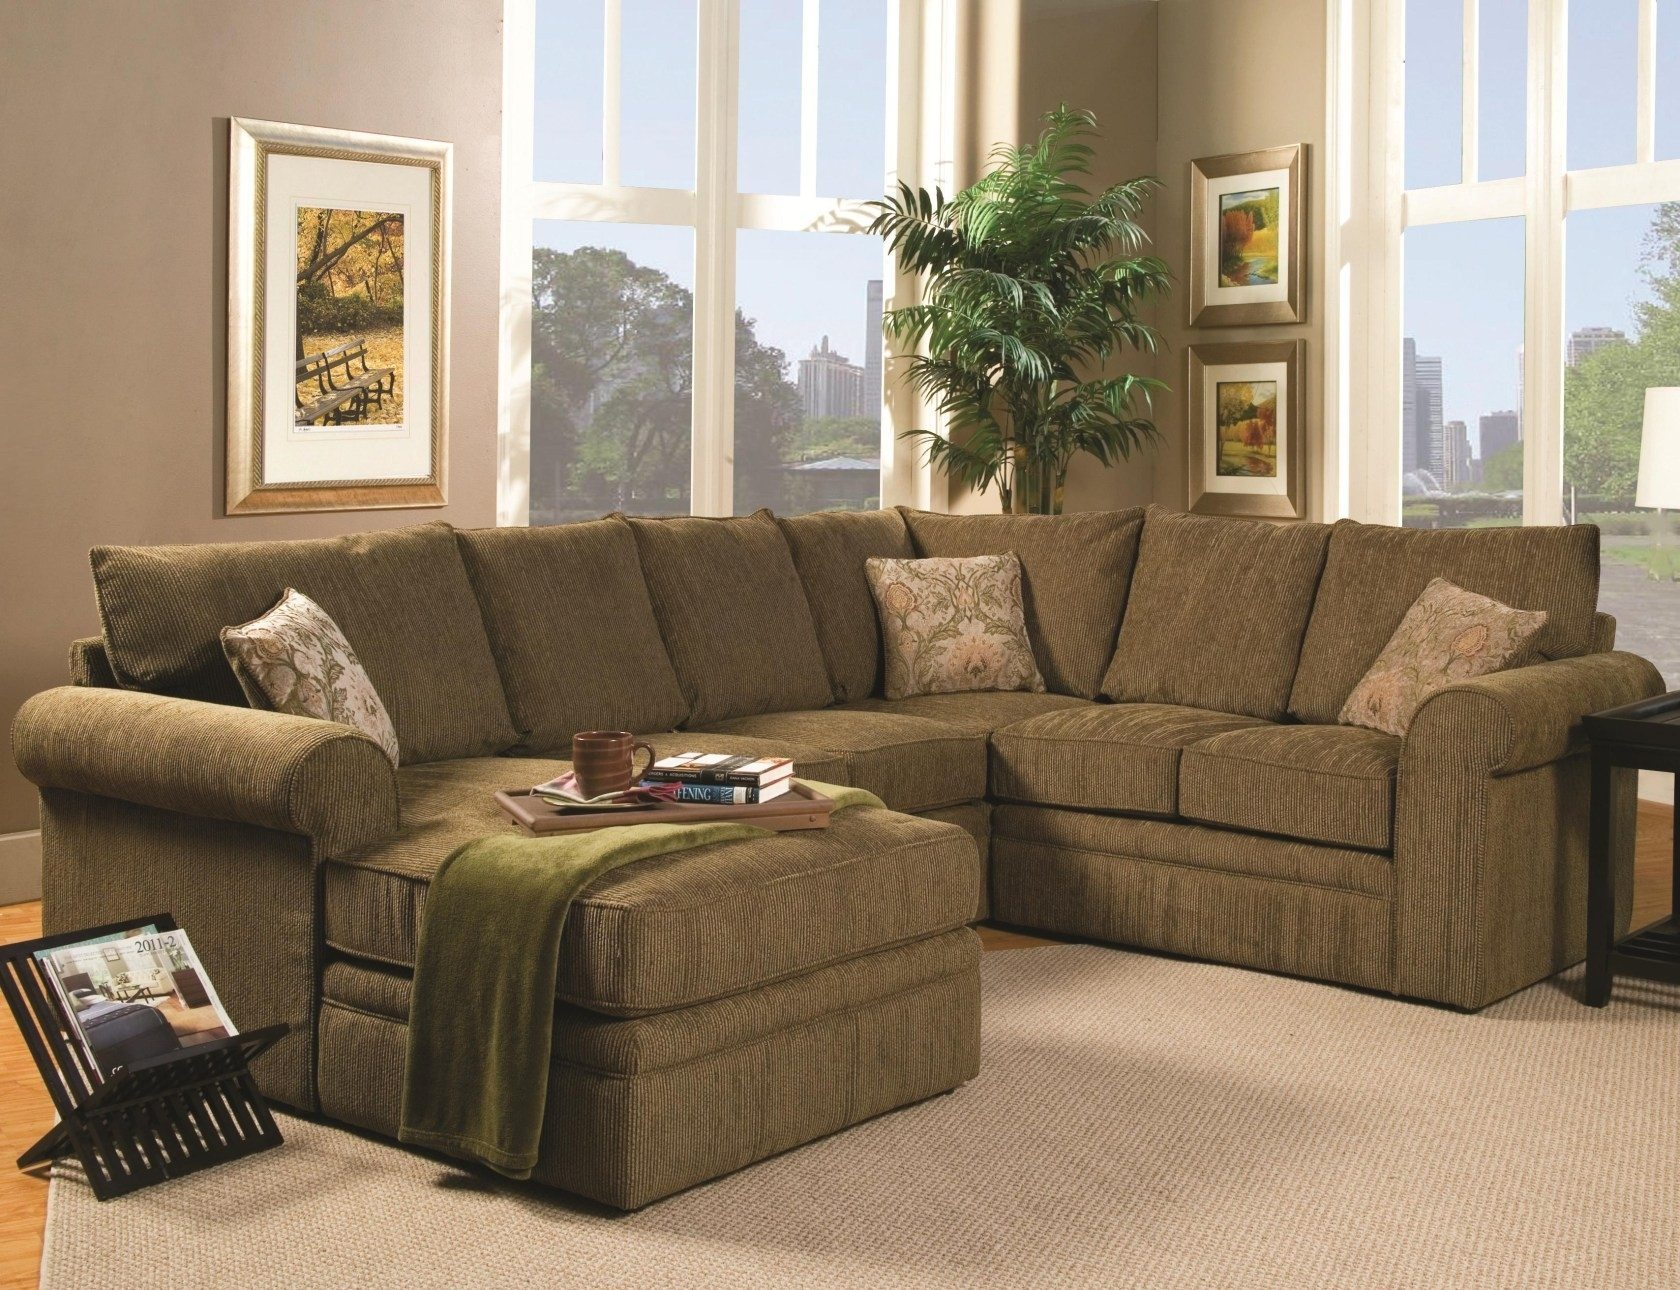 Leather Sectional | Curved Couch | Large Sectional Sofas